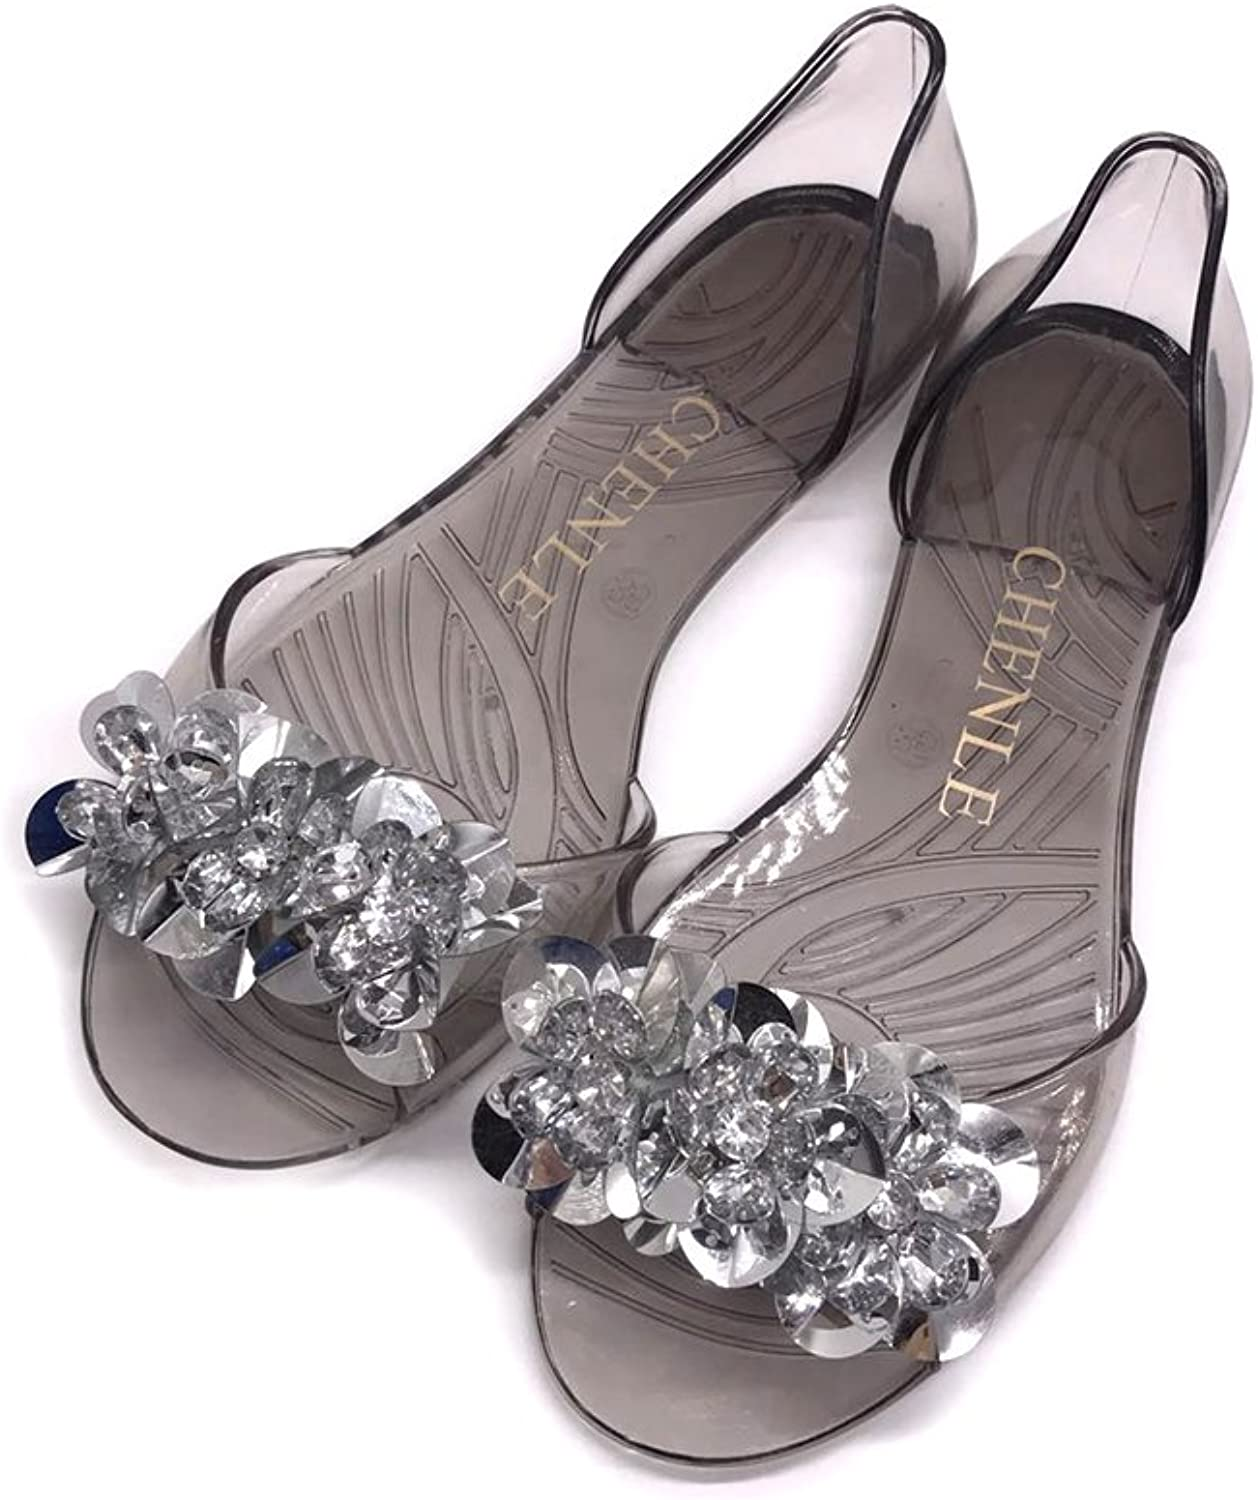 Btrada Womens Jelly Sandals Fashion Bling Man-Made Diamond Slides Peep Toe Transparent shoes Beach Flats